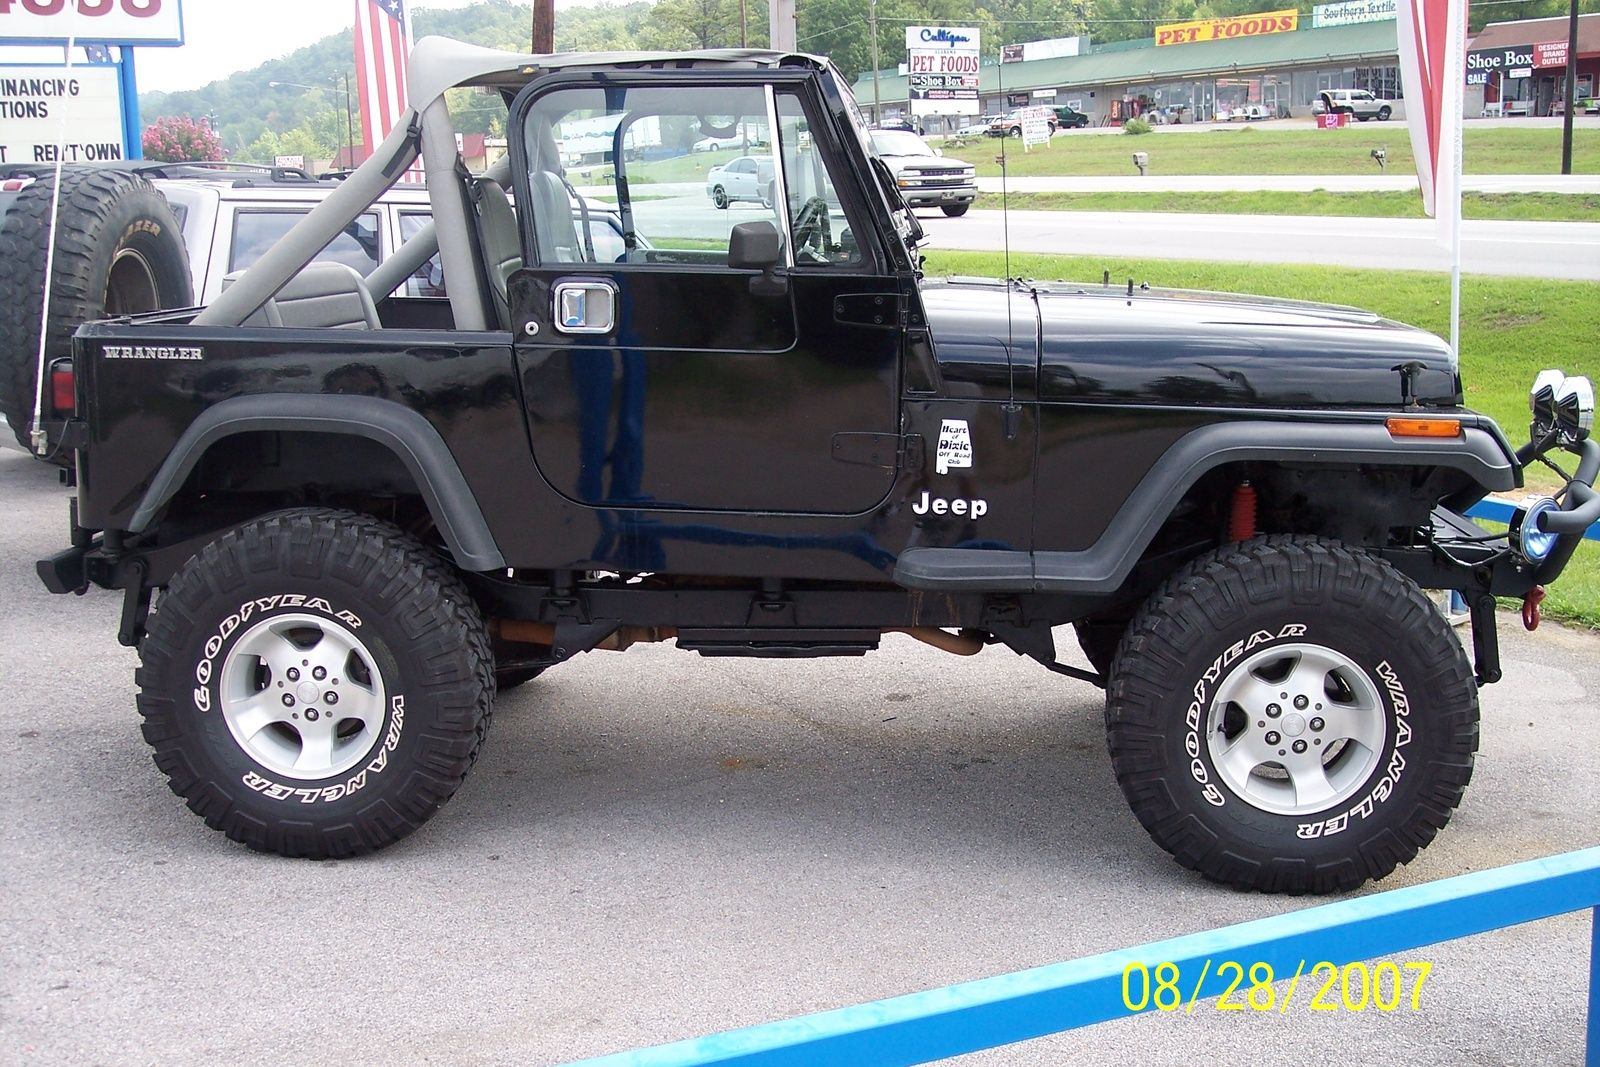 1998 Jeep Wrangler 2008 Jeep Wrangler 2 Dr Rubicon Picture Exterior 1998 Jeep Wrangler Jeep Wrangler 2008 Jeep Wrangler